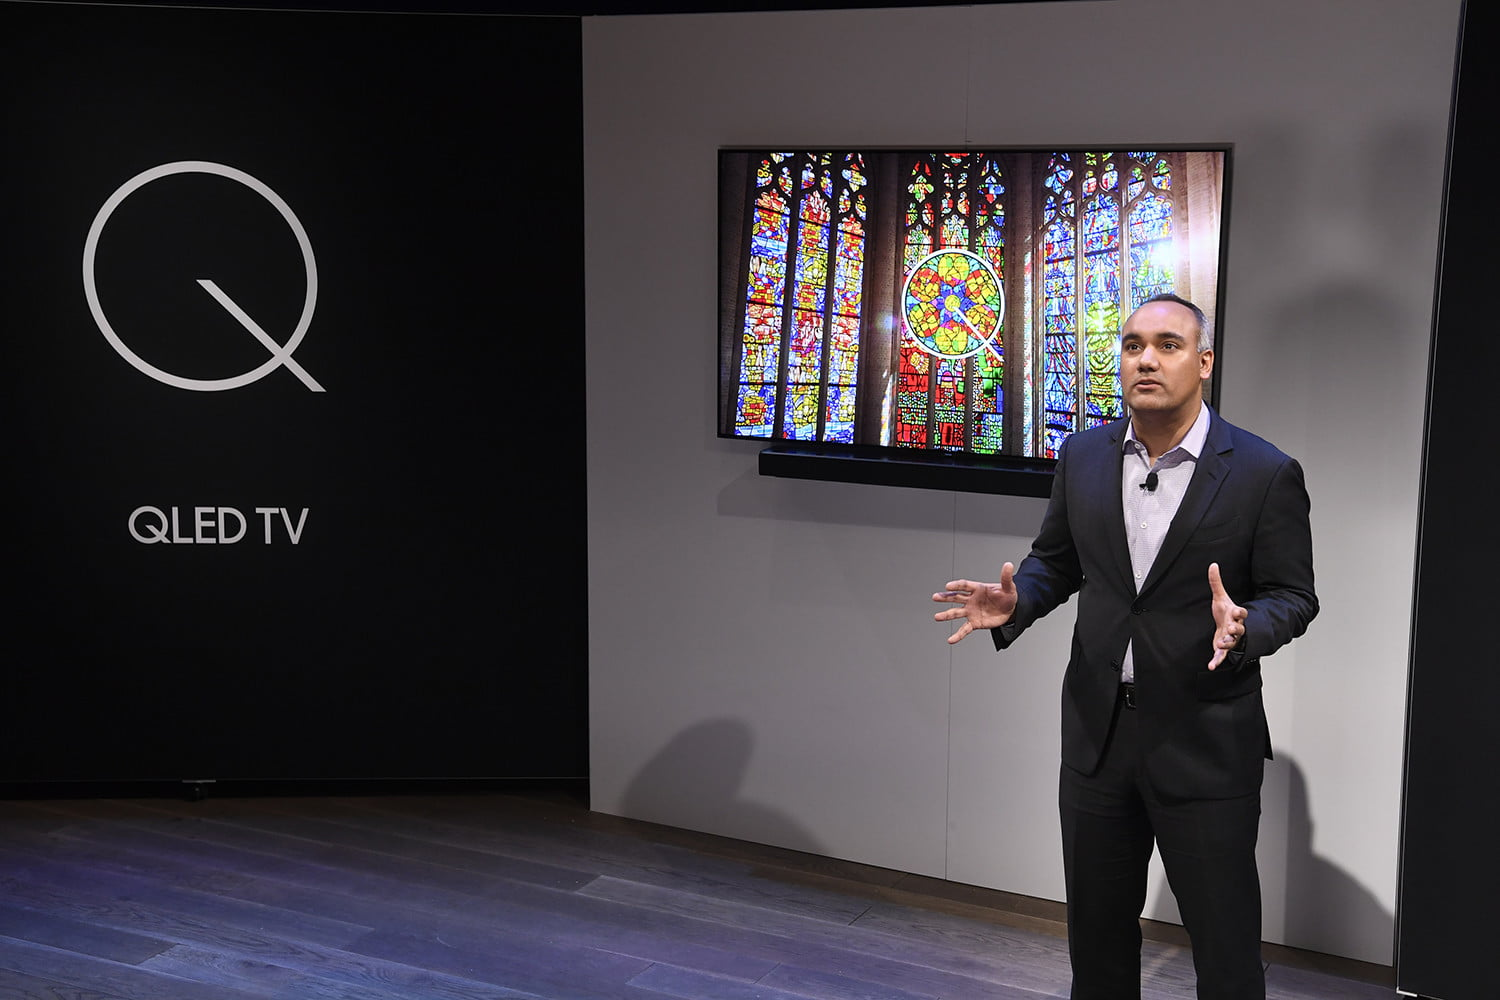 samsung 2017 qled tv series models pricing features reveals lineup and